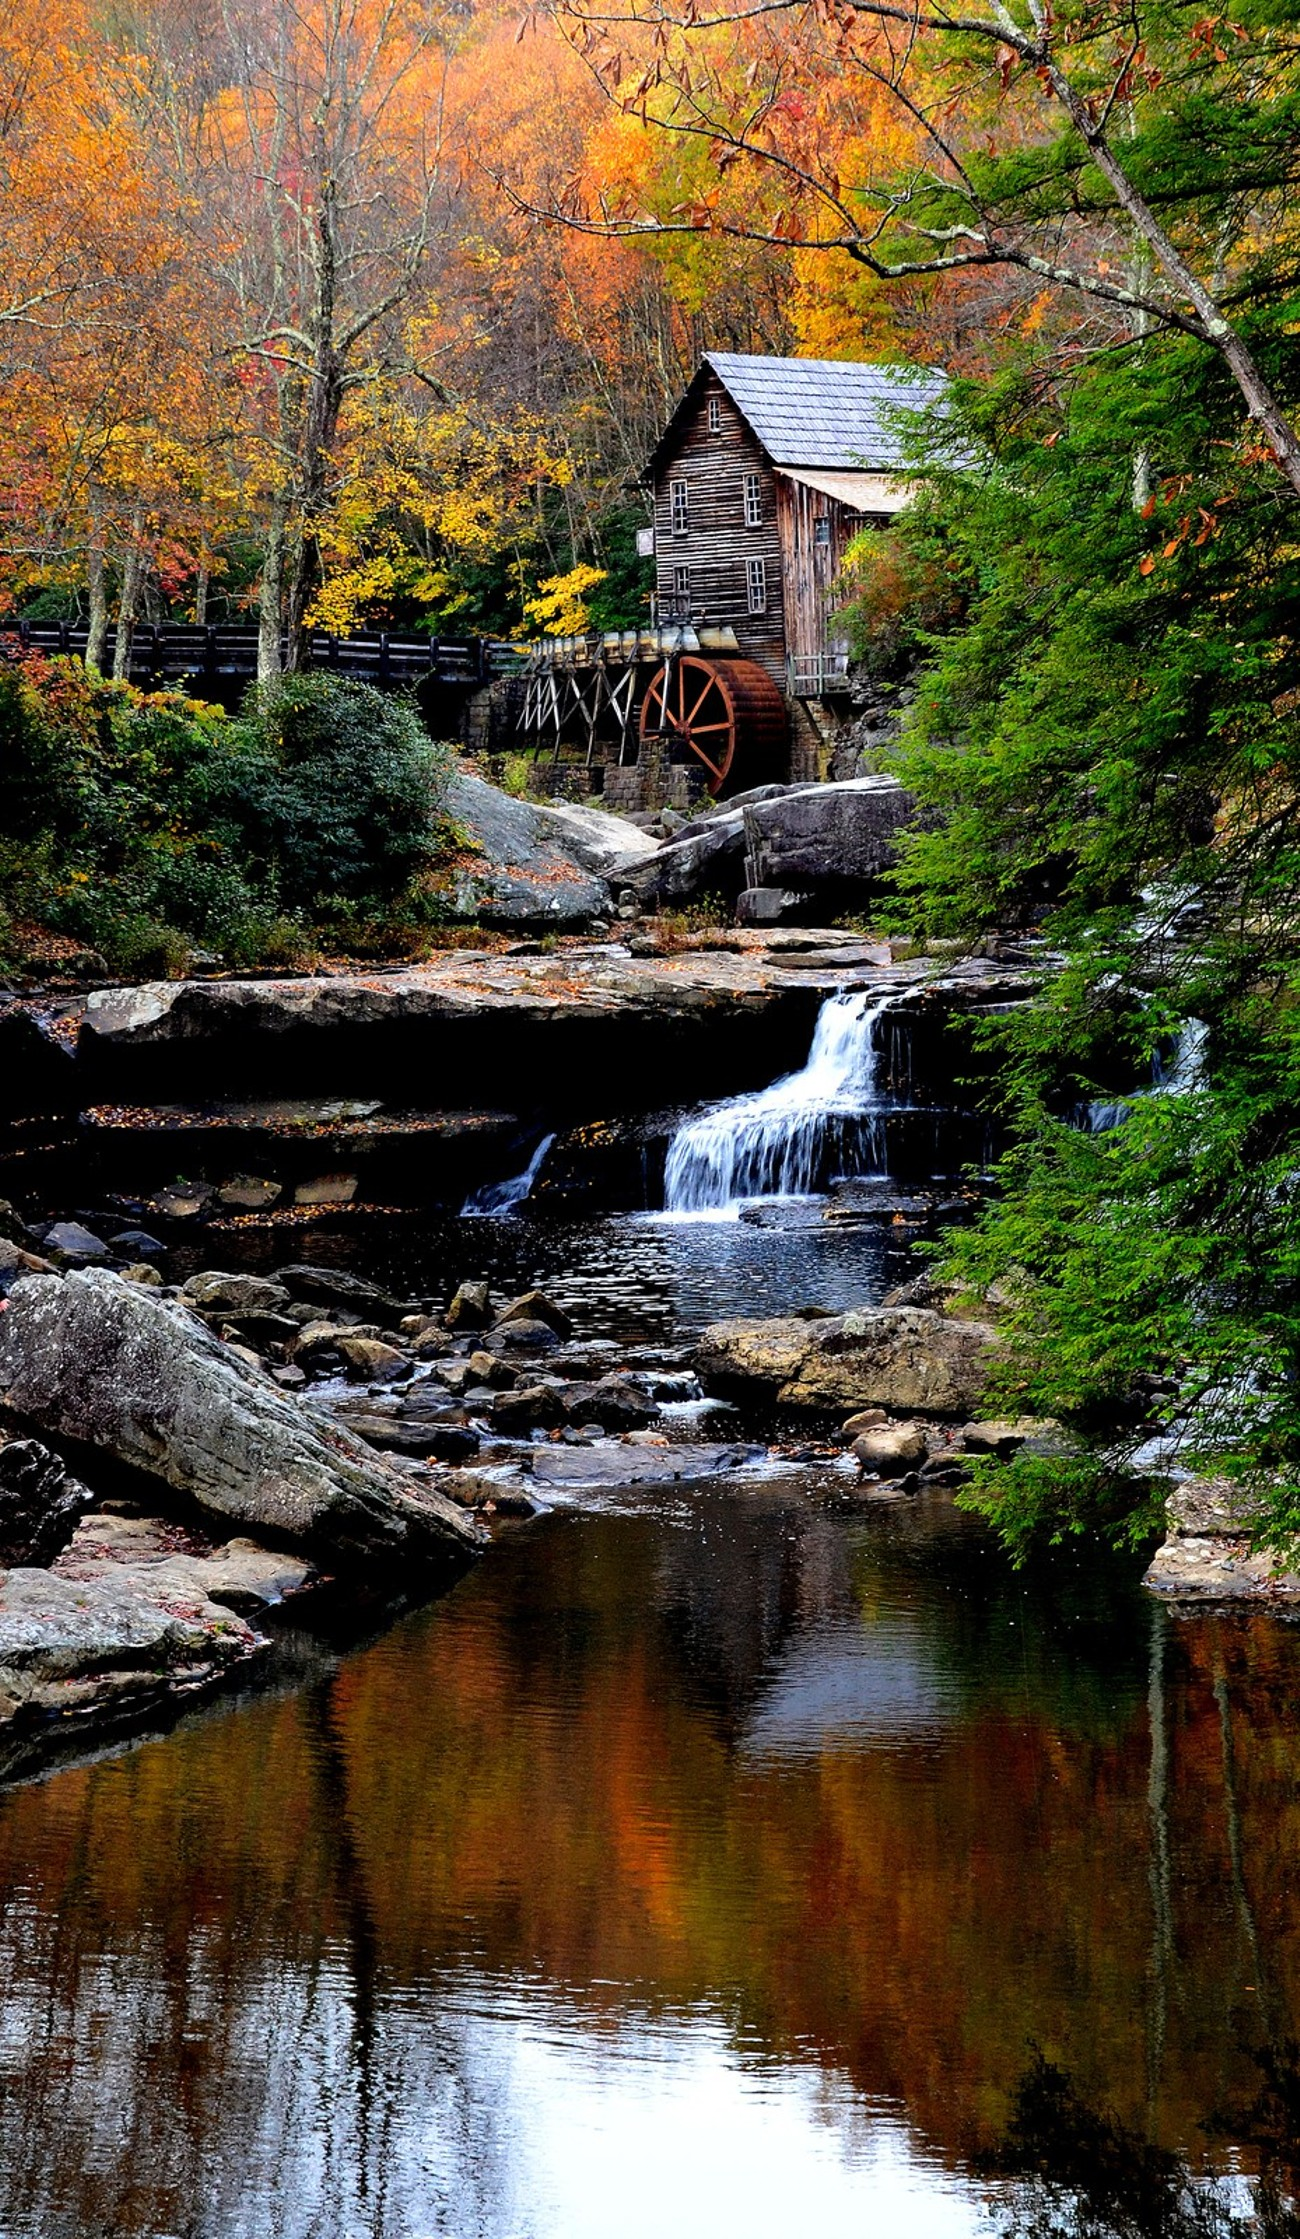 Babcock Grist Mill with reflection in foreground